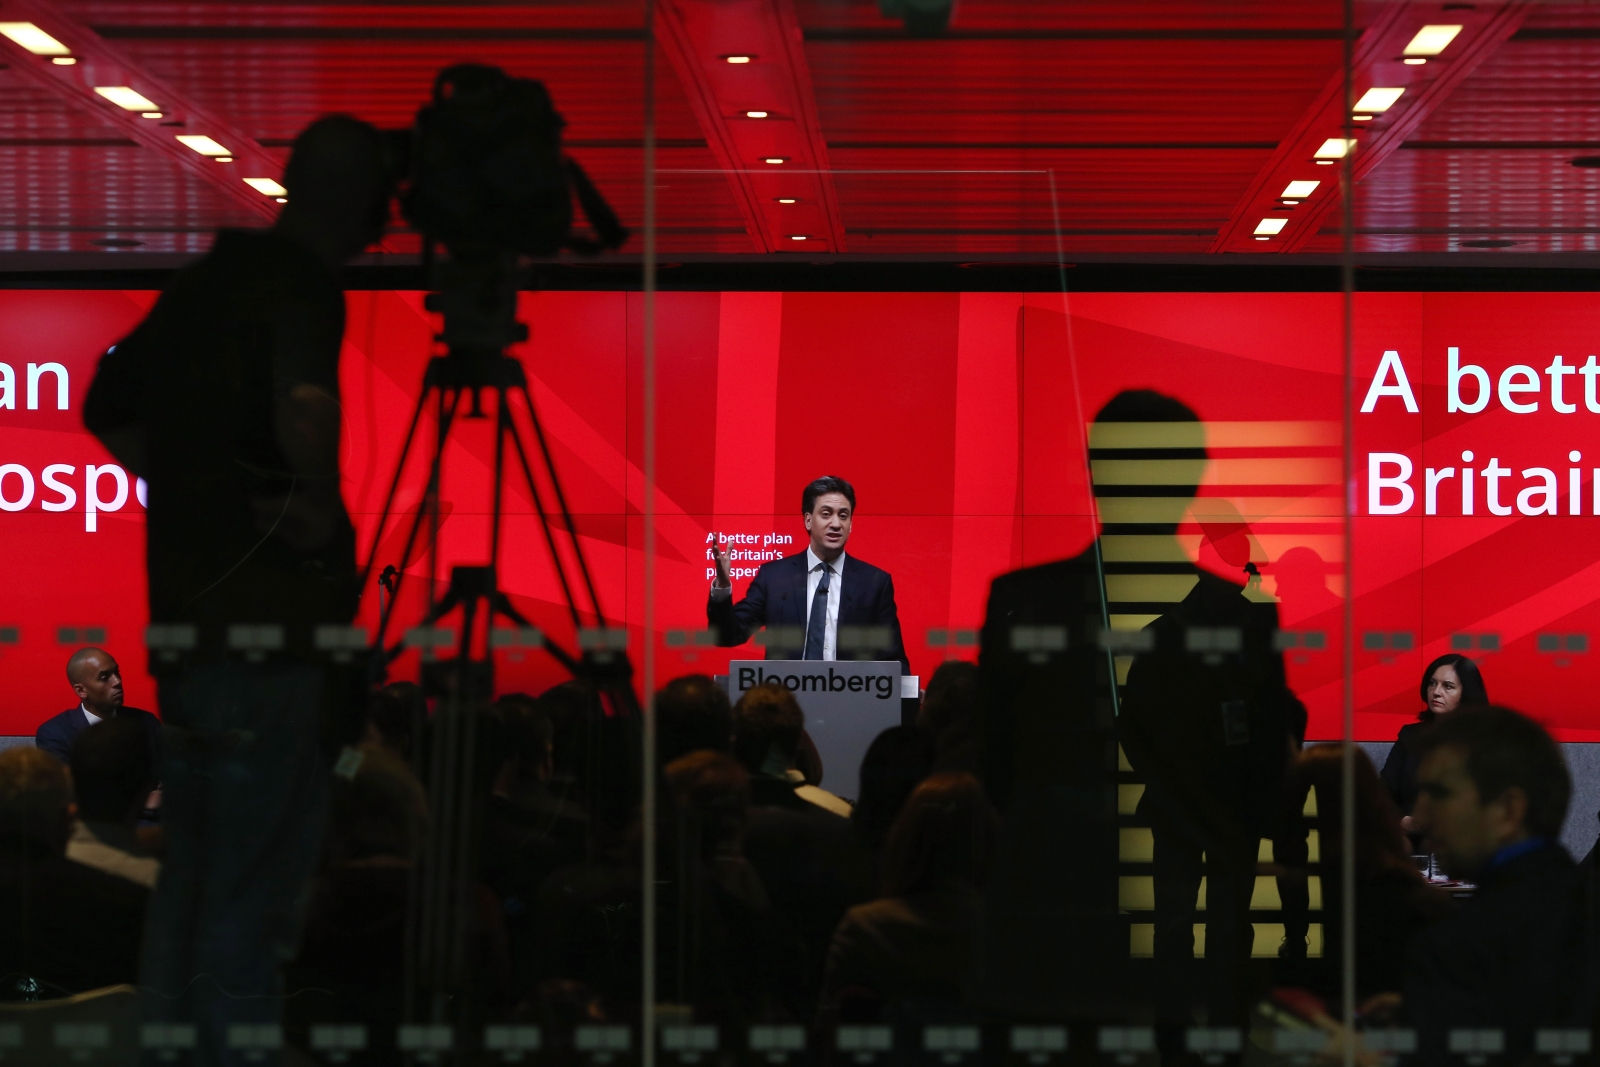 Ed Miliband Bloomberg Speech